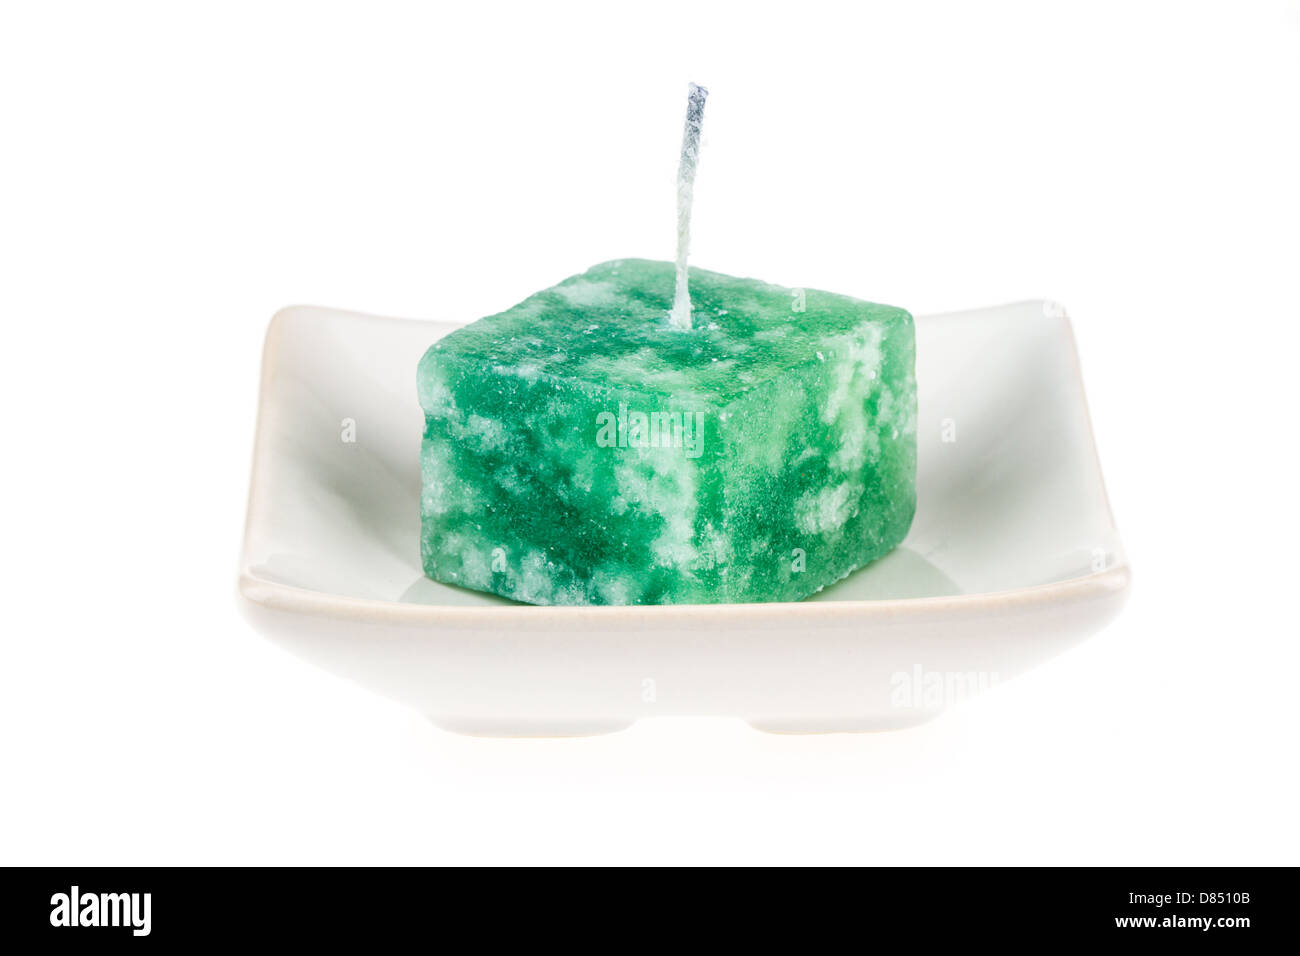 Green candle on a plate isolated on a white background. - Stock Image